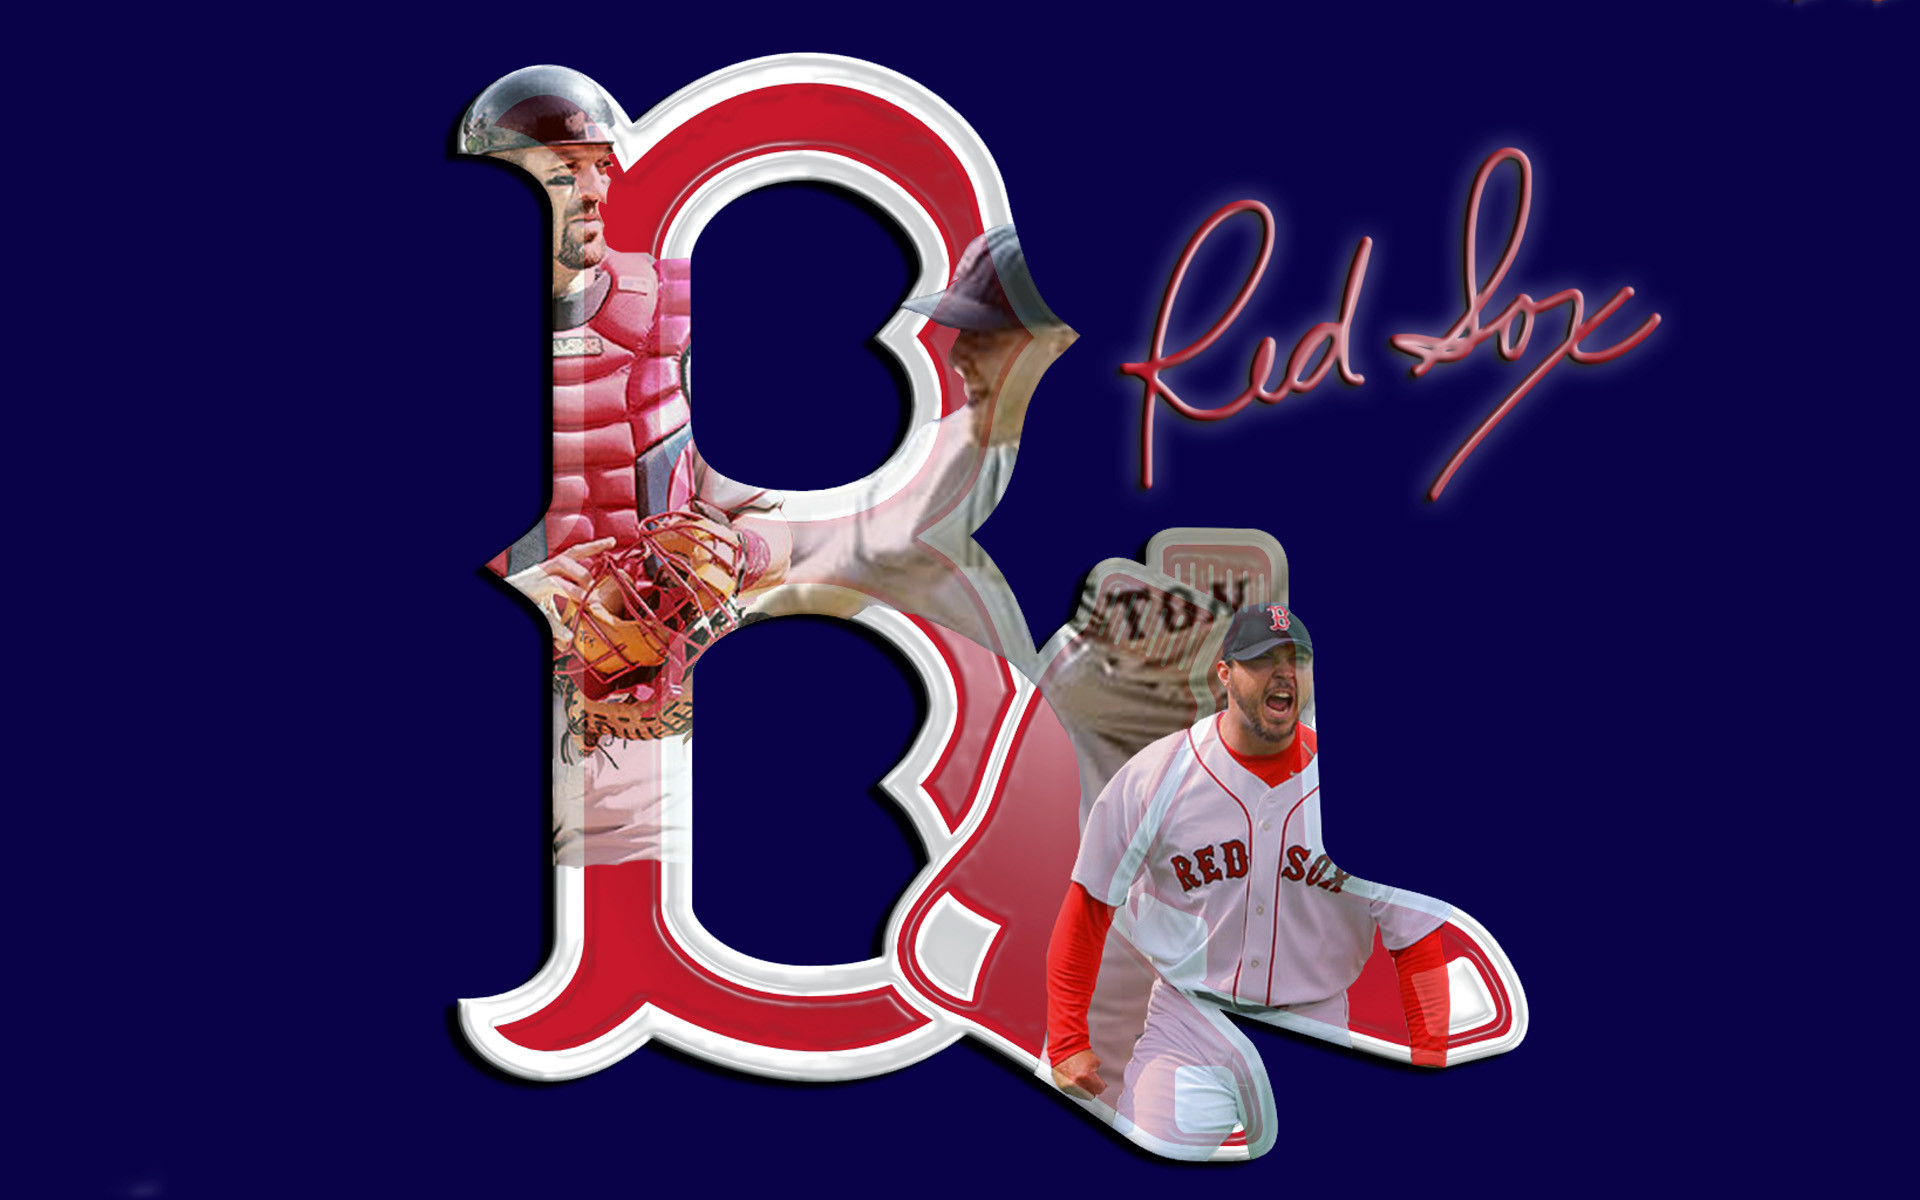 1920x1200 Boston Red Sox HD background Boston Red Sox wallpapers